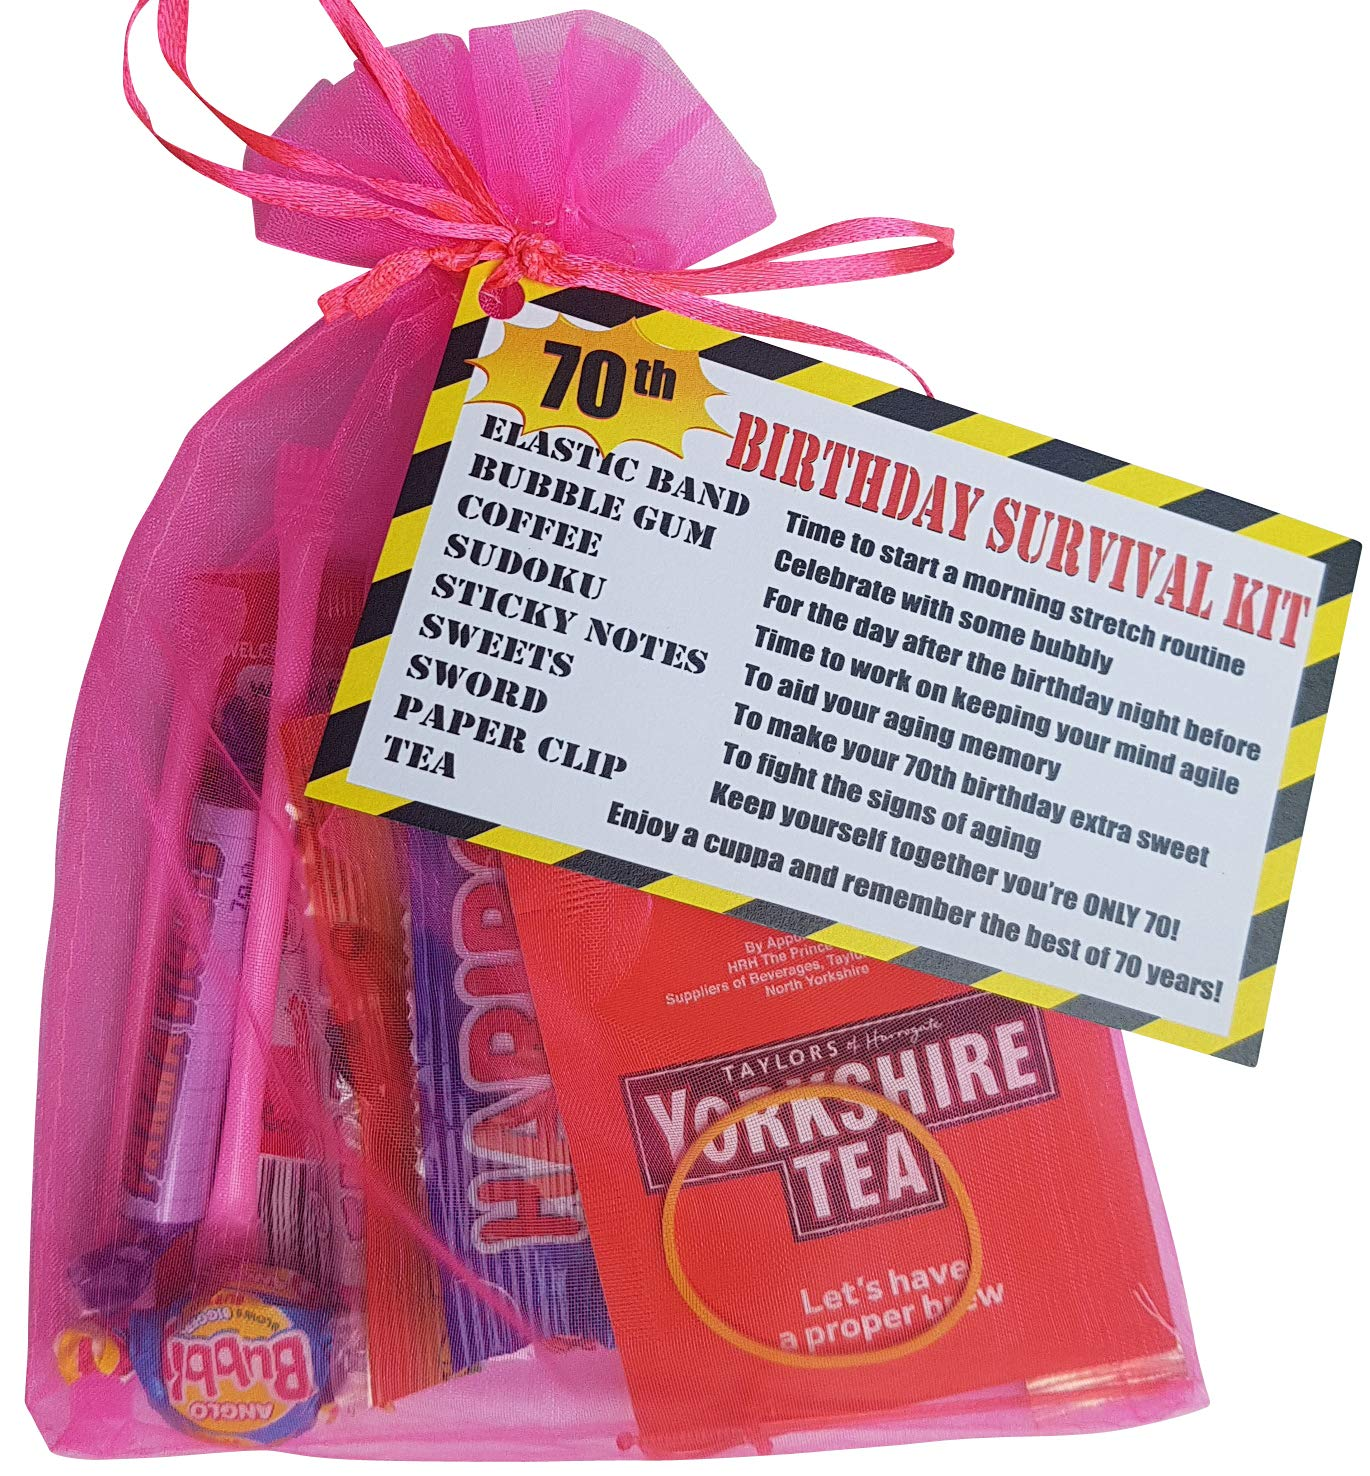 Pink 70th Birthday Survival KIT Gift/Present - a Fun Cheeky Gift to Make  Them Smile Birthday idea for Mum Sister Female Friend: Amazon.co.uk: Office  Products